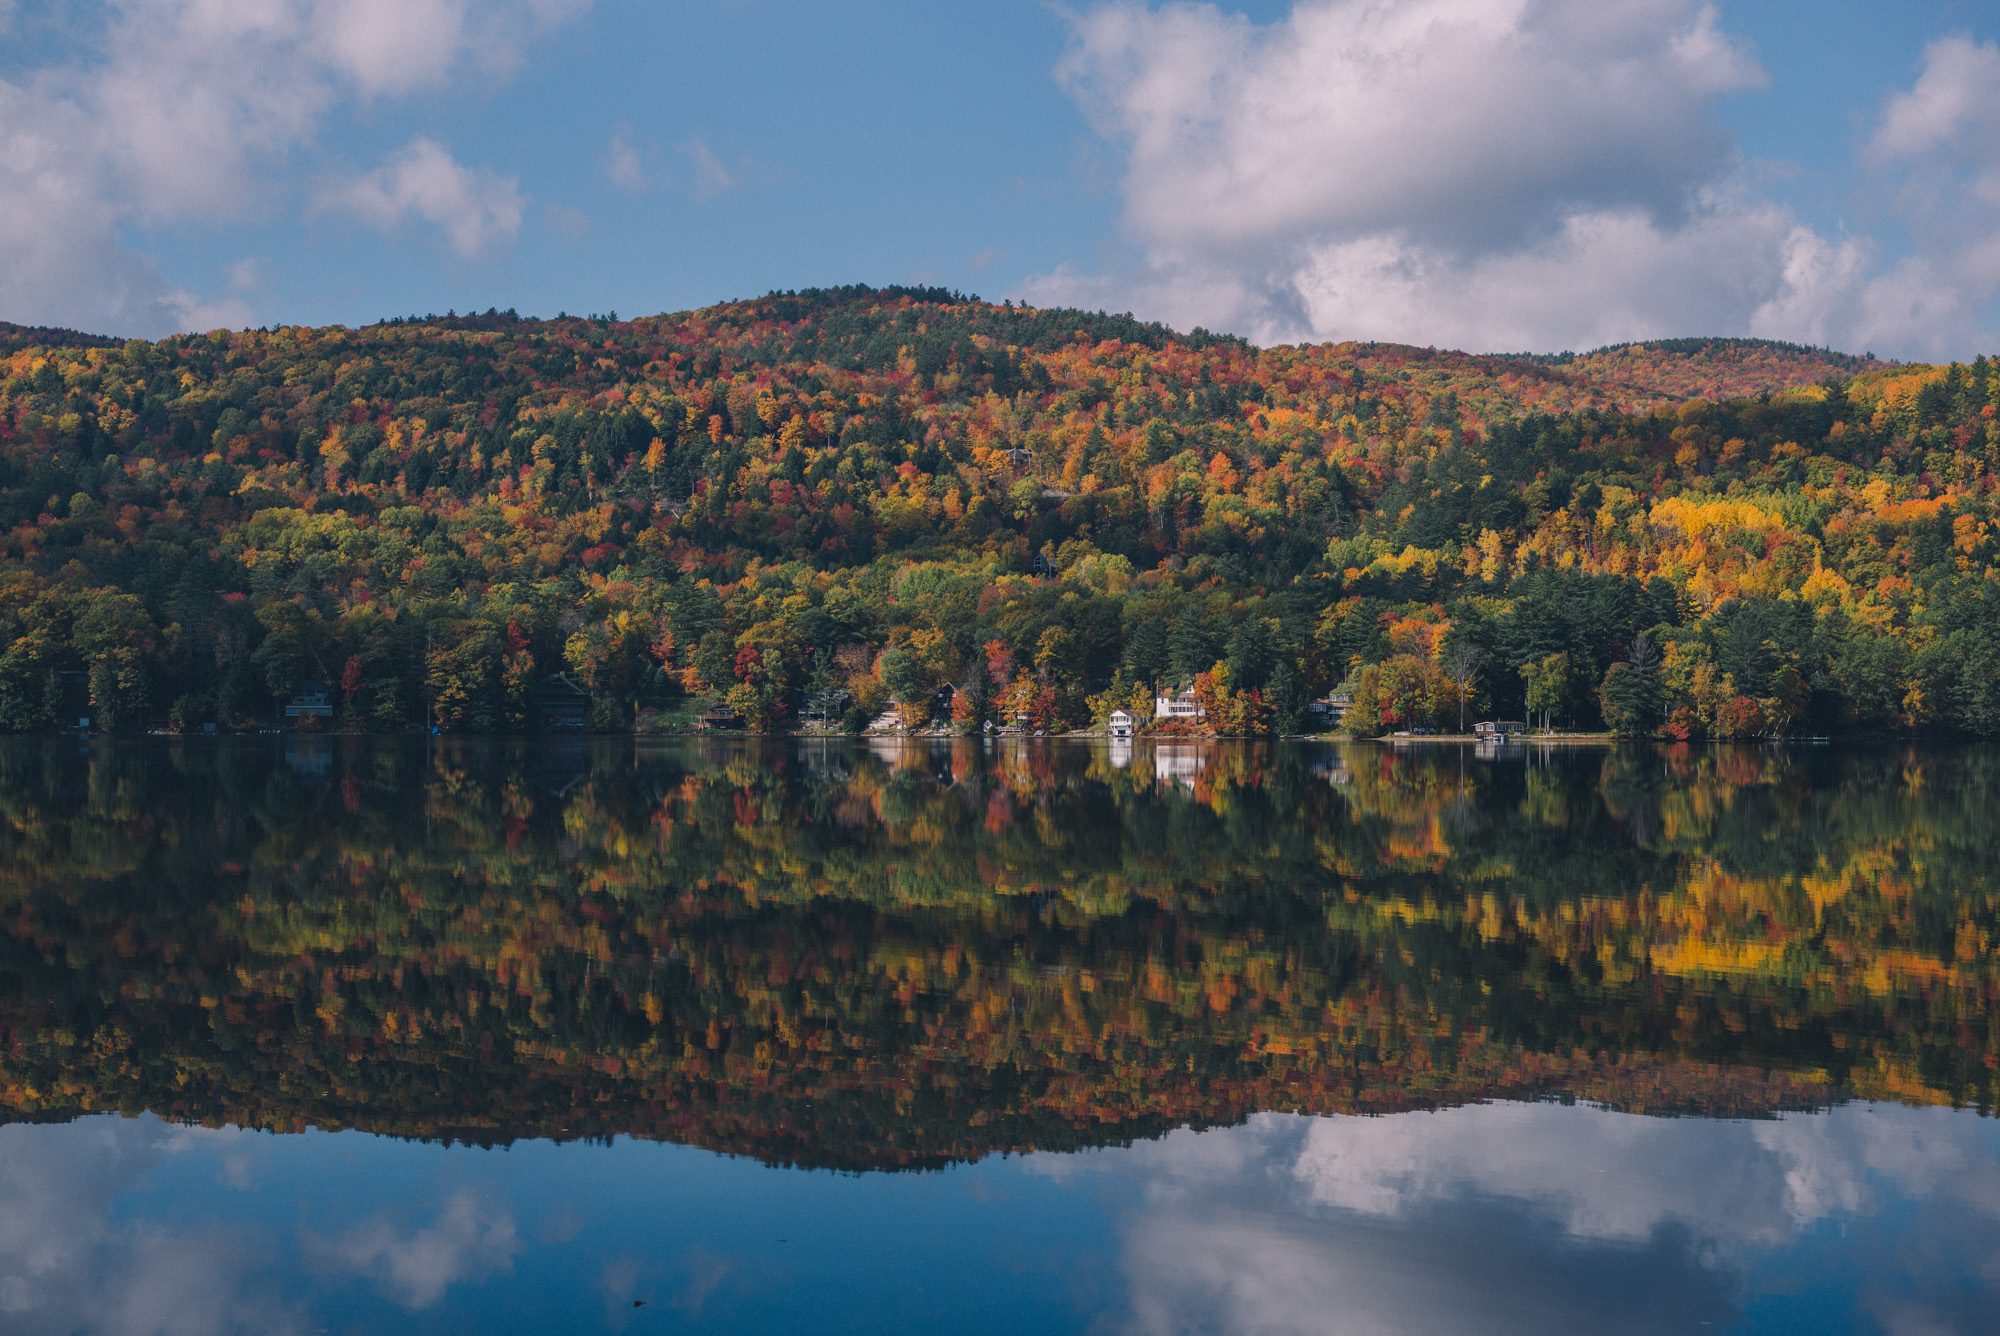 gmg-woodstock-vermont-fall-1000301